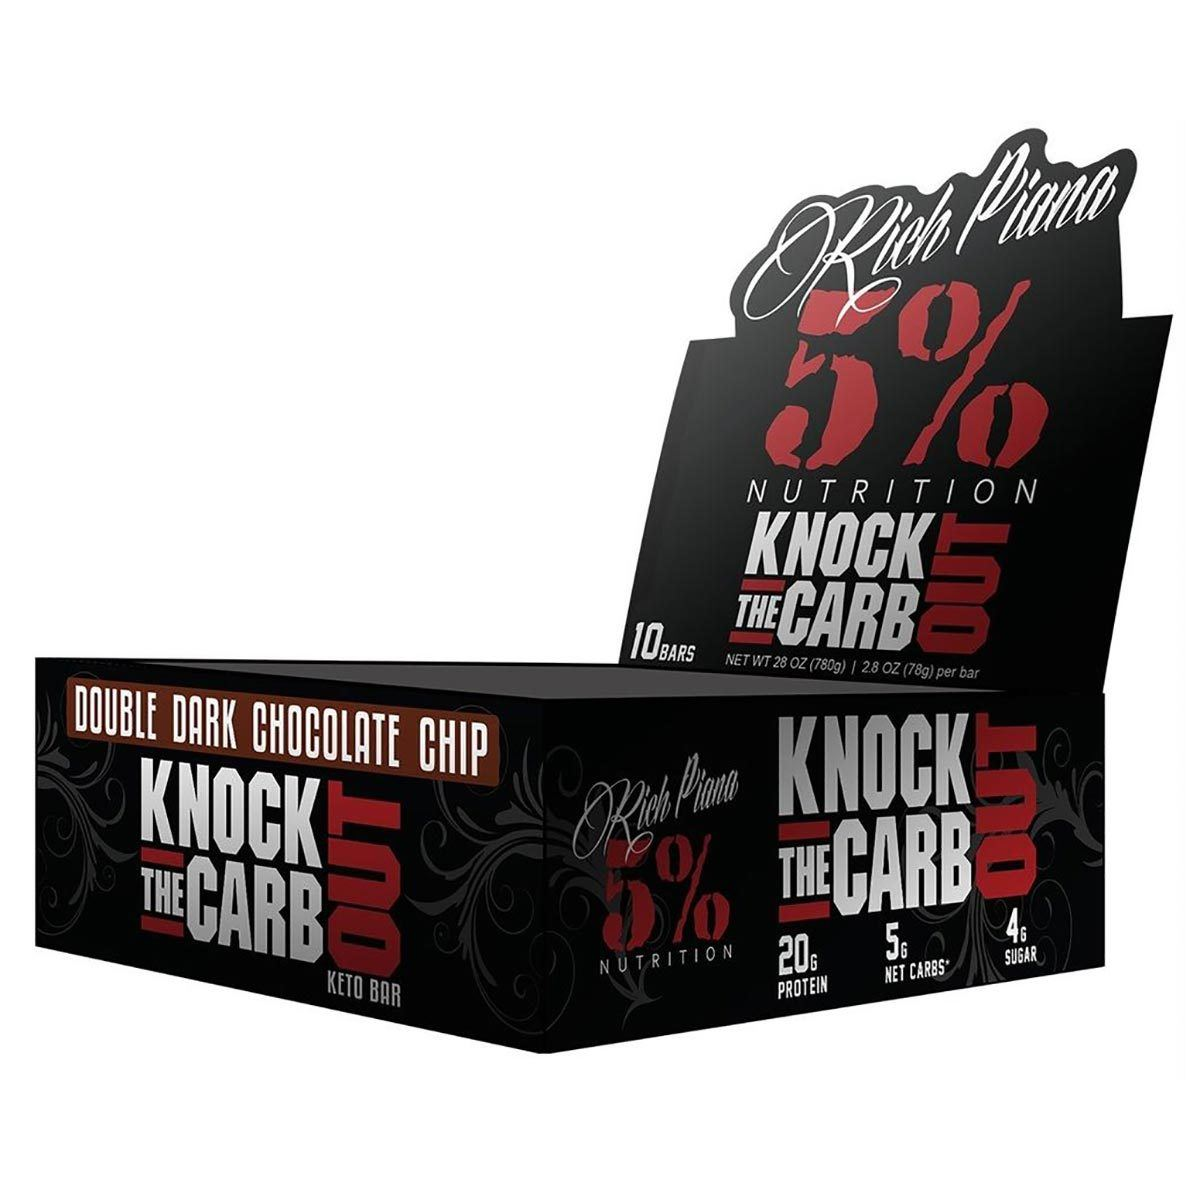 5% Nutrition Knock The Carb Out 10/Box Bars 5% Nutrition Double Dark Chocolate Chip  (1528464506923)